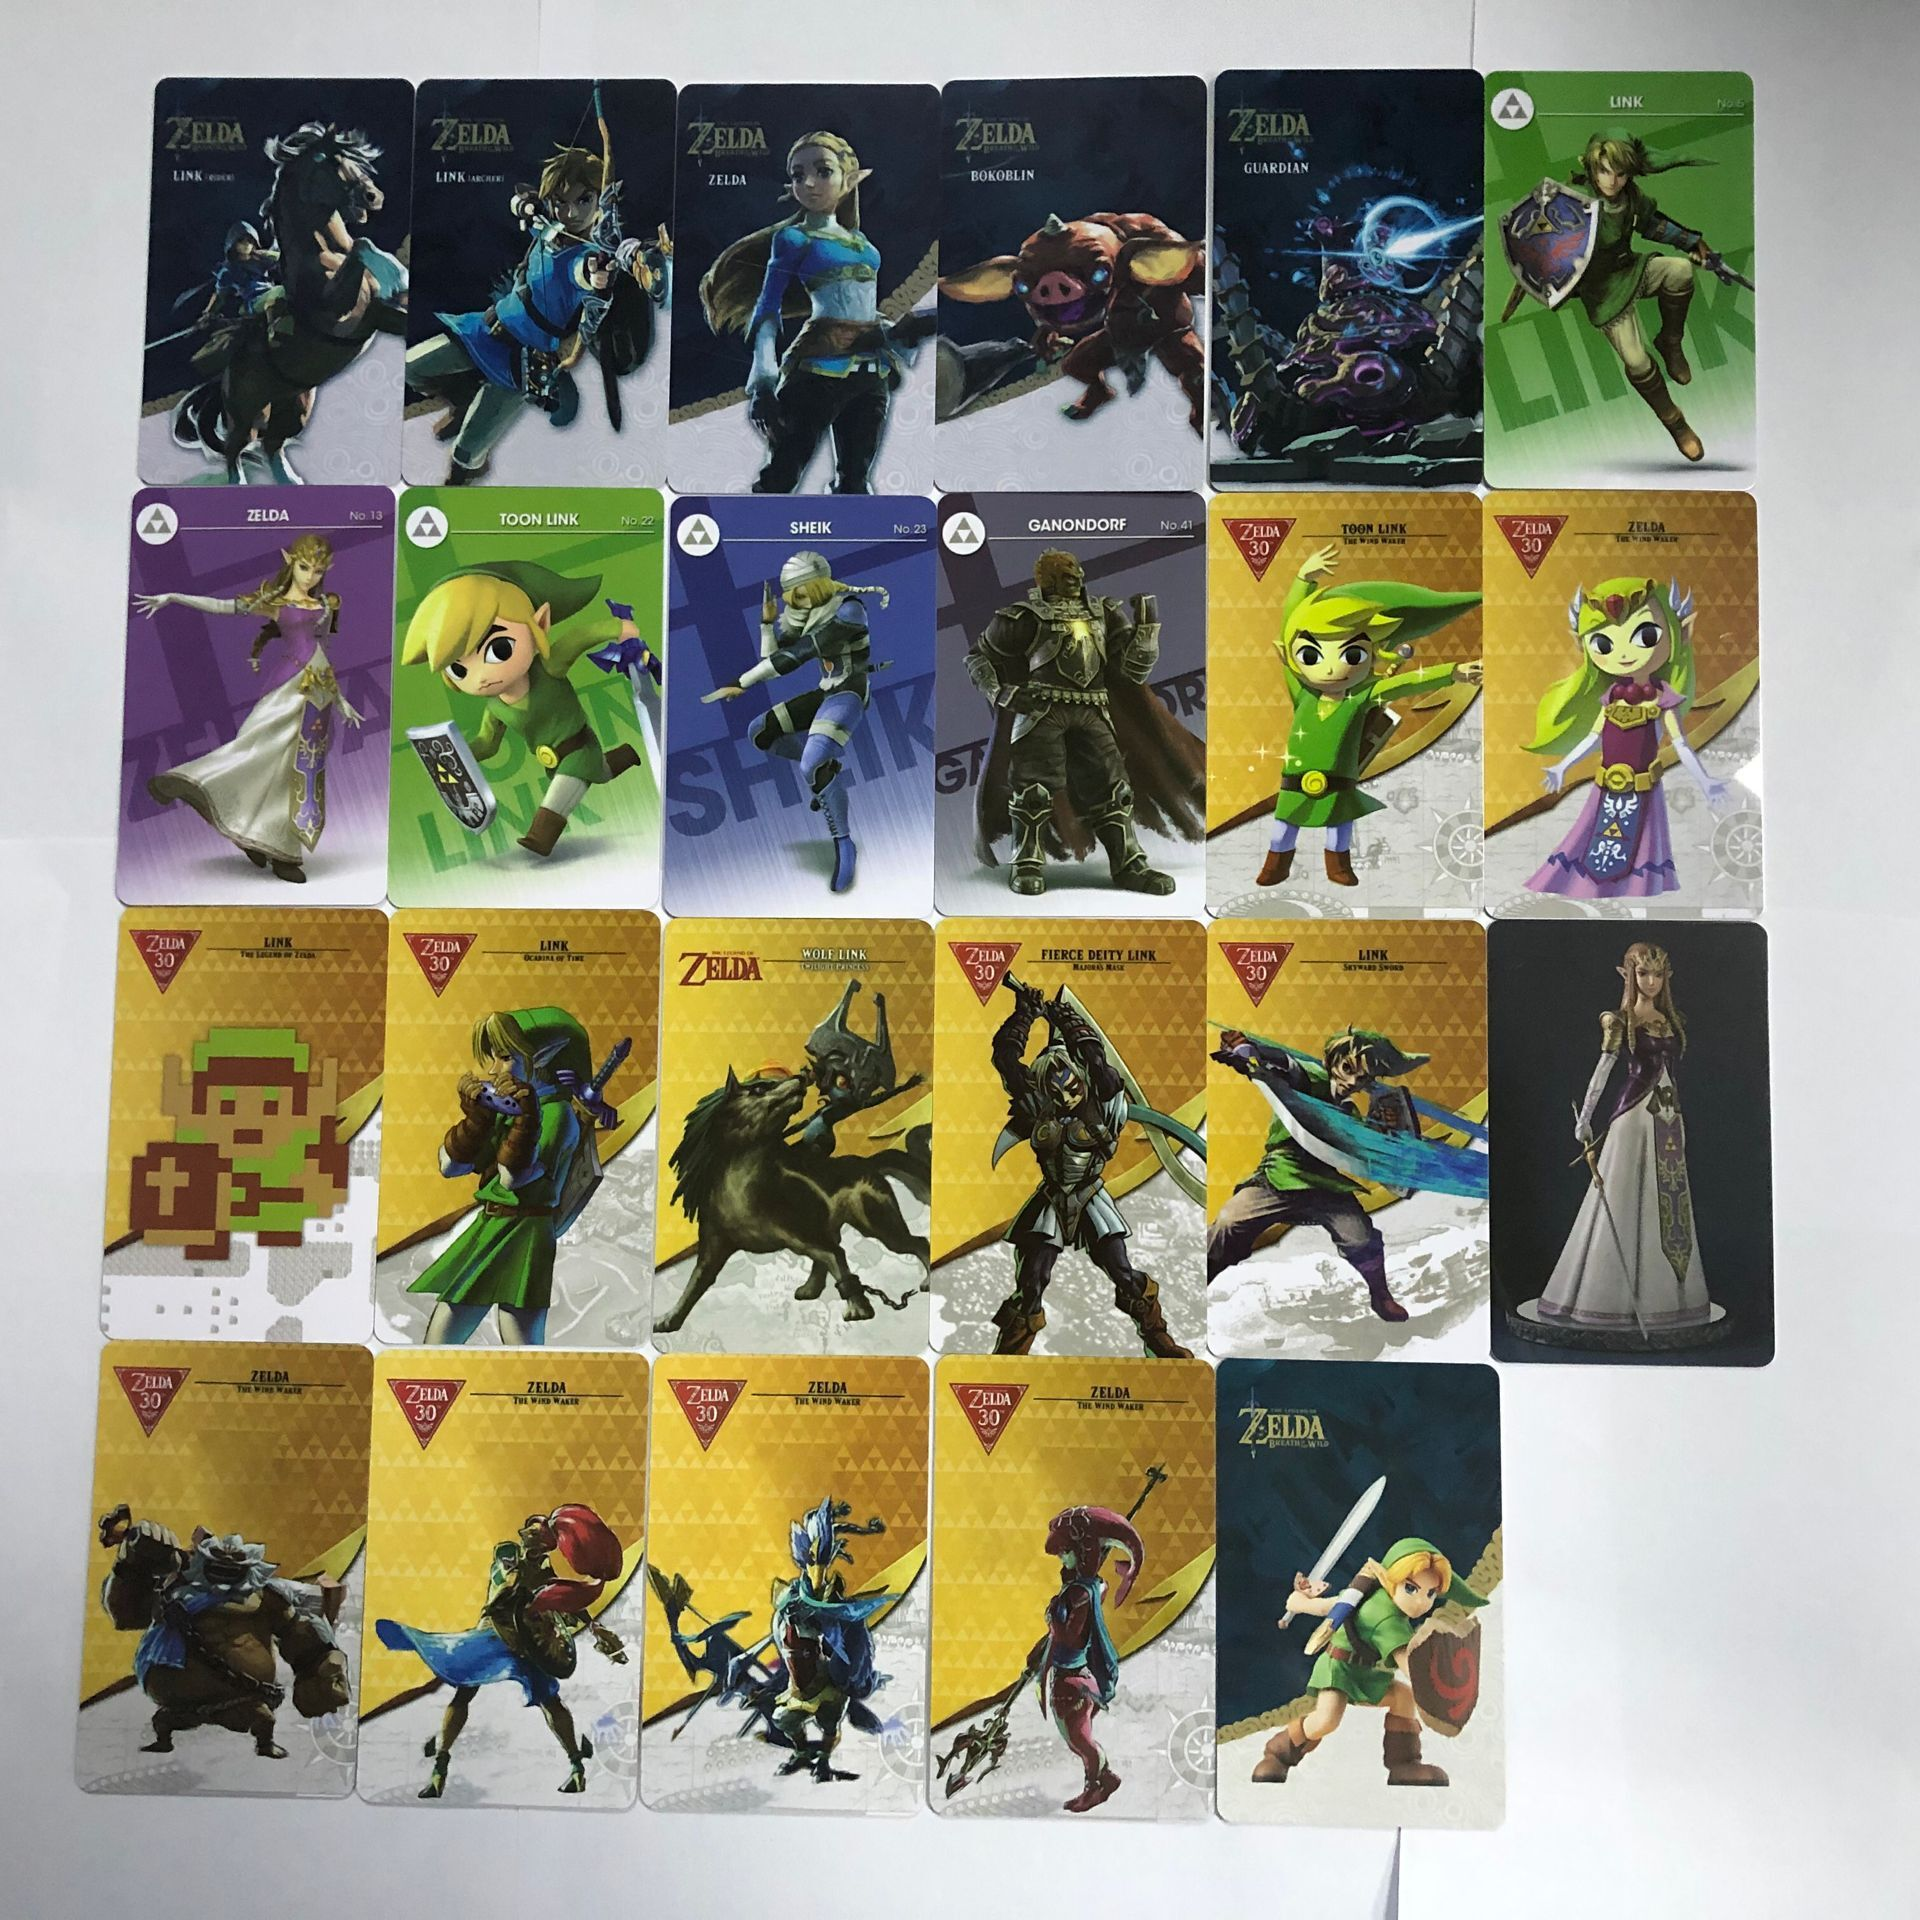 NFC Game Cards for NIntendo Switch for the Legend of Zelda BotW Special Gift 23pcs/set-in Access Control Cards from Security & Protection